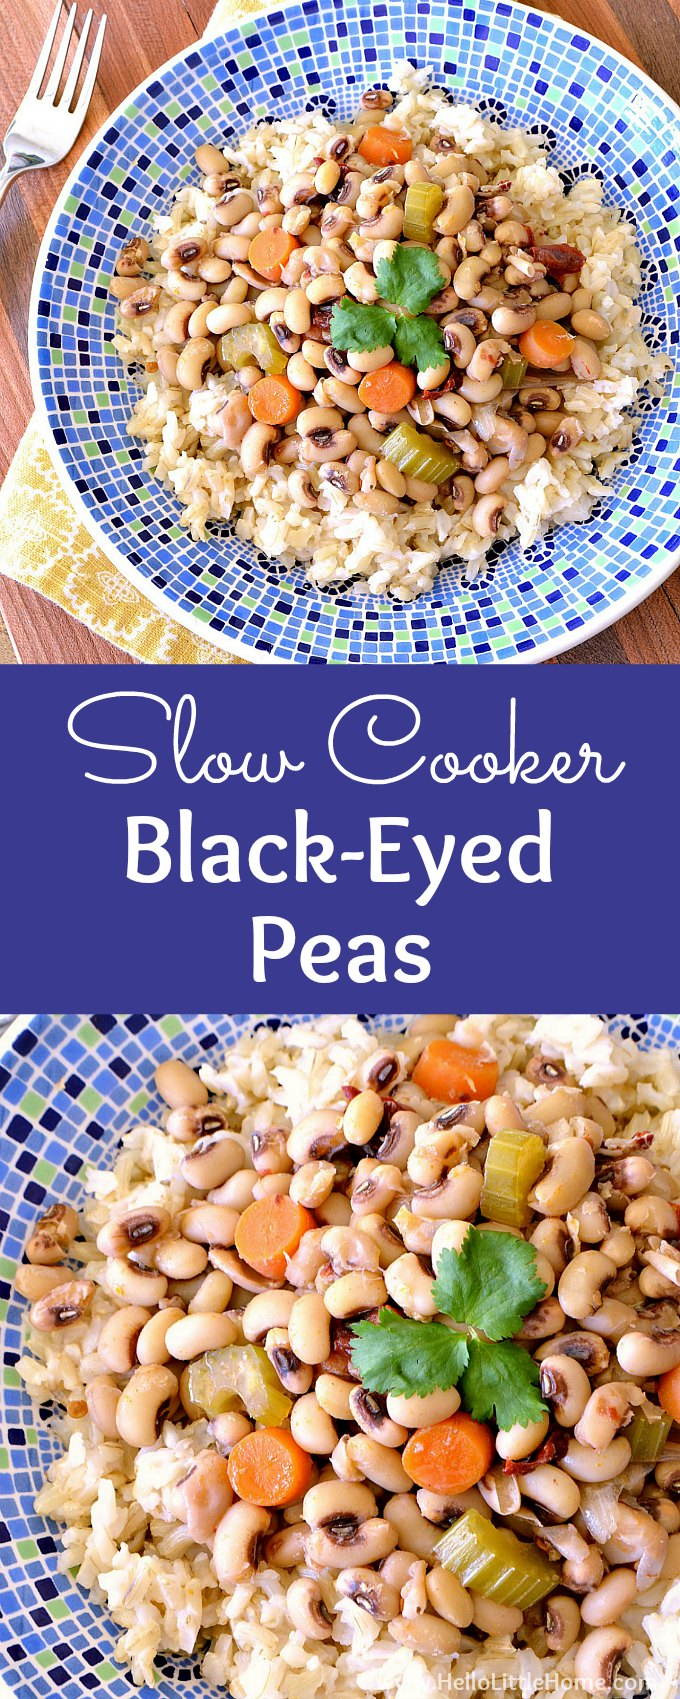 Easy Crock Pot Black Eyed Peas! Make these delicious vegetarian black eyed peas for New Year's Day or anytime! Learn how to cook Southern style black eyed peas in your slow cooker. Serve these vegan black eyed peas for a healthy meat free meal. These spicy black eyed peas from scratch (Hoppin' John), make a delish meatless dinner served with cornbread and collard greens. | Hello Little Home #blackeyedpeas #hoppinjohn #veganrecipes #vegetarianrecipes #slowcookerrecipes #crockpotrecipes